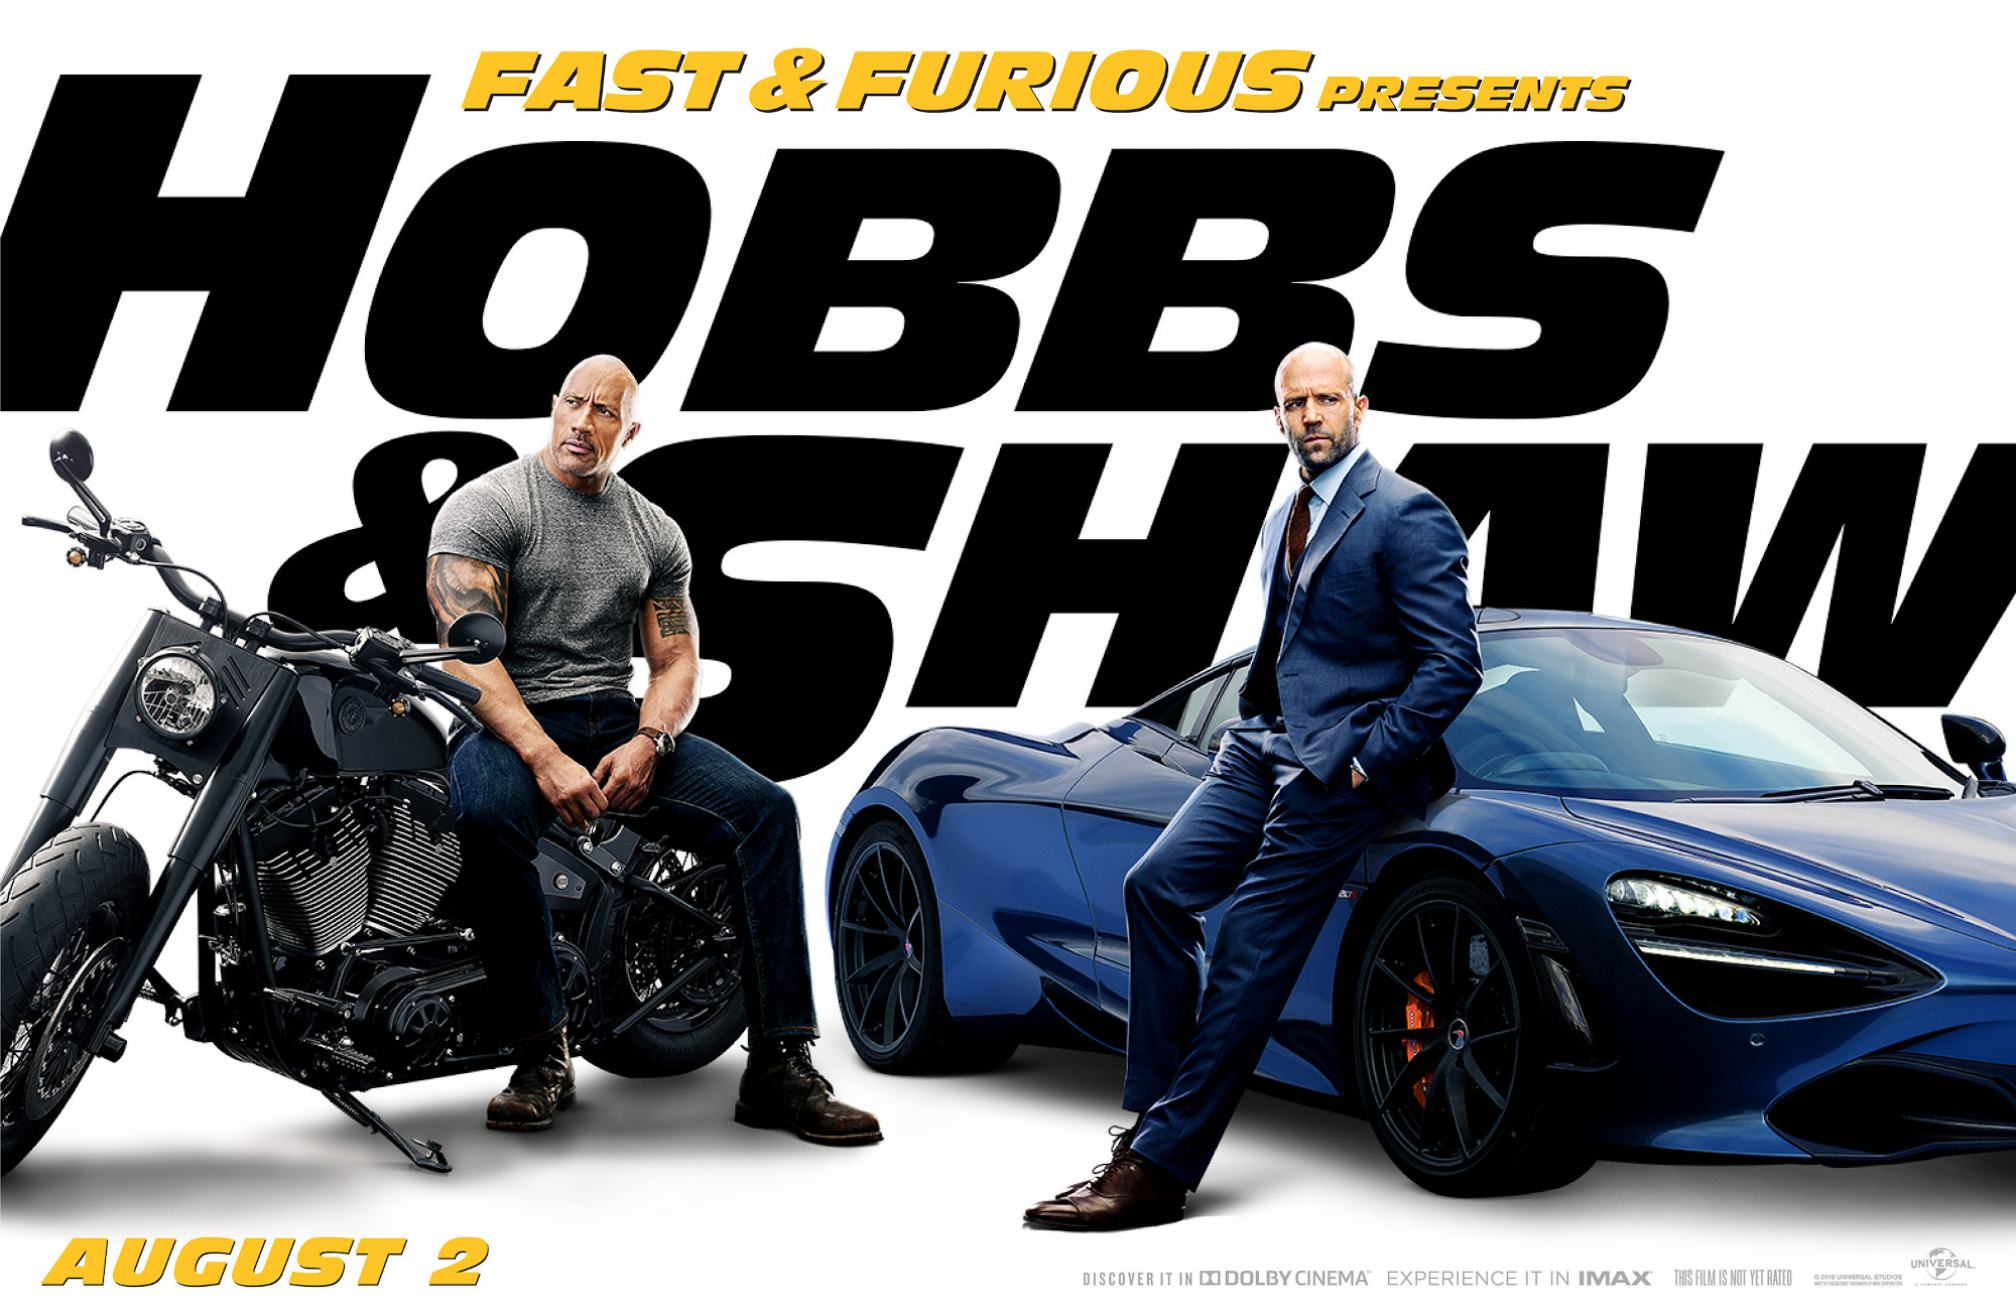 Fast Furious Presents Hobbs Shaw 2019 Poster 5 Trailer Addict